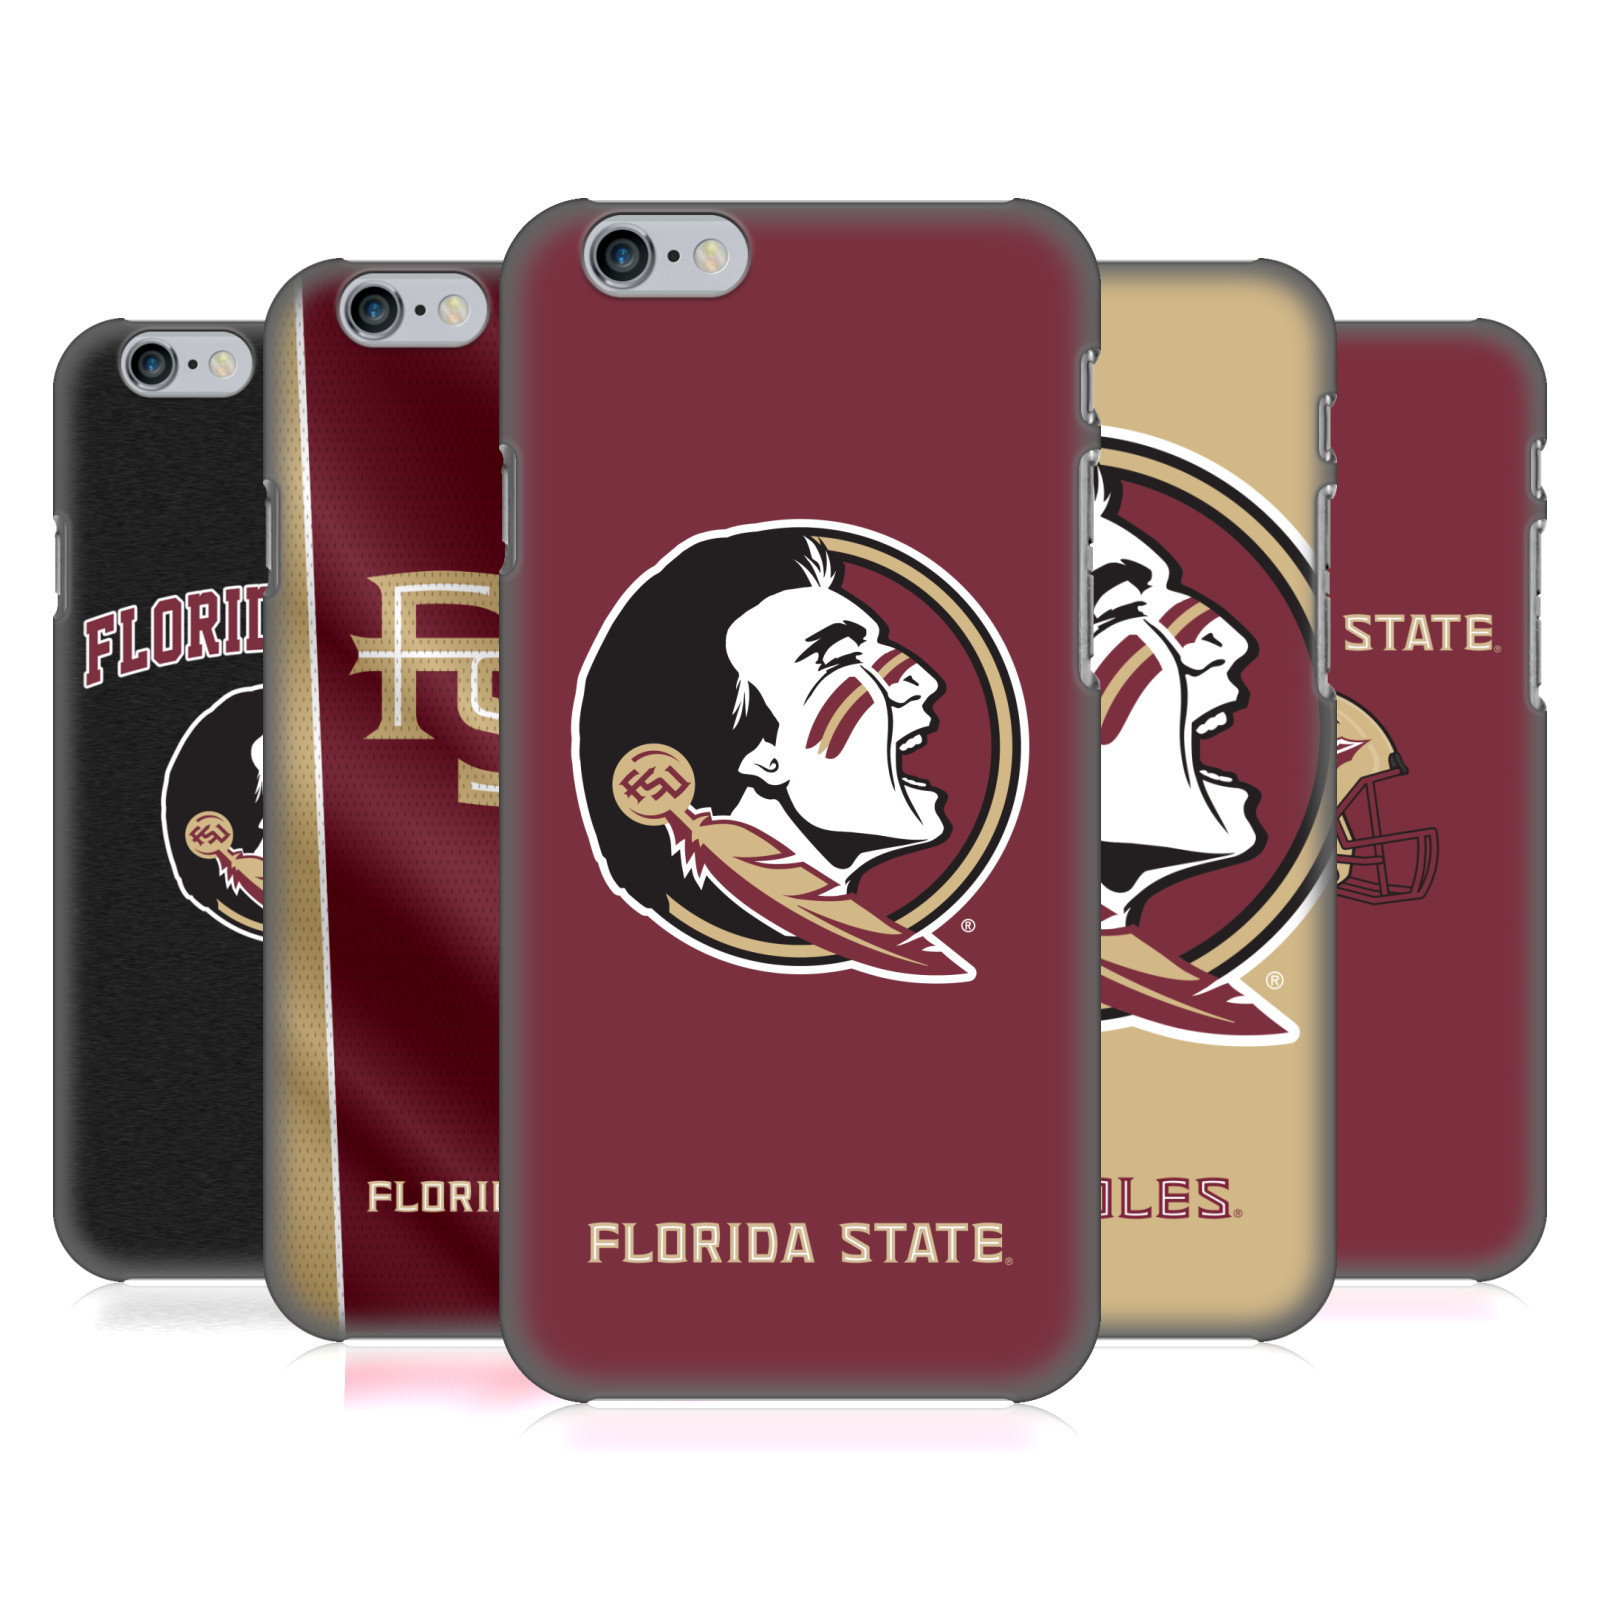 Florida State University Phone and Tablet cases